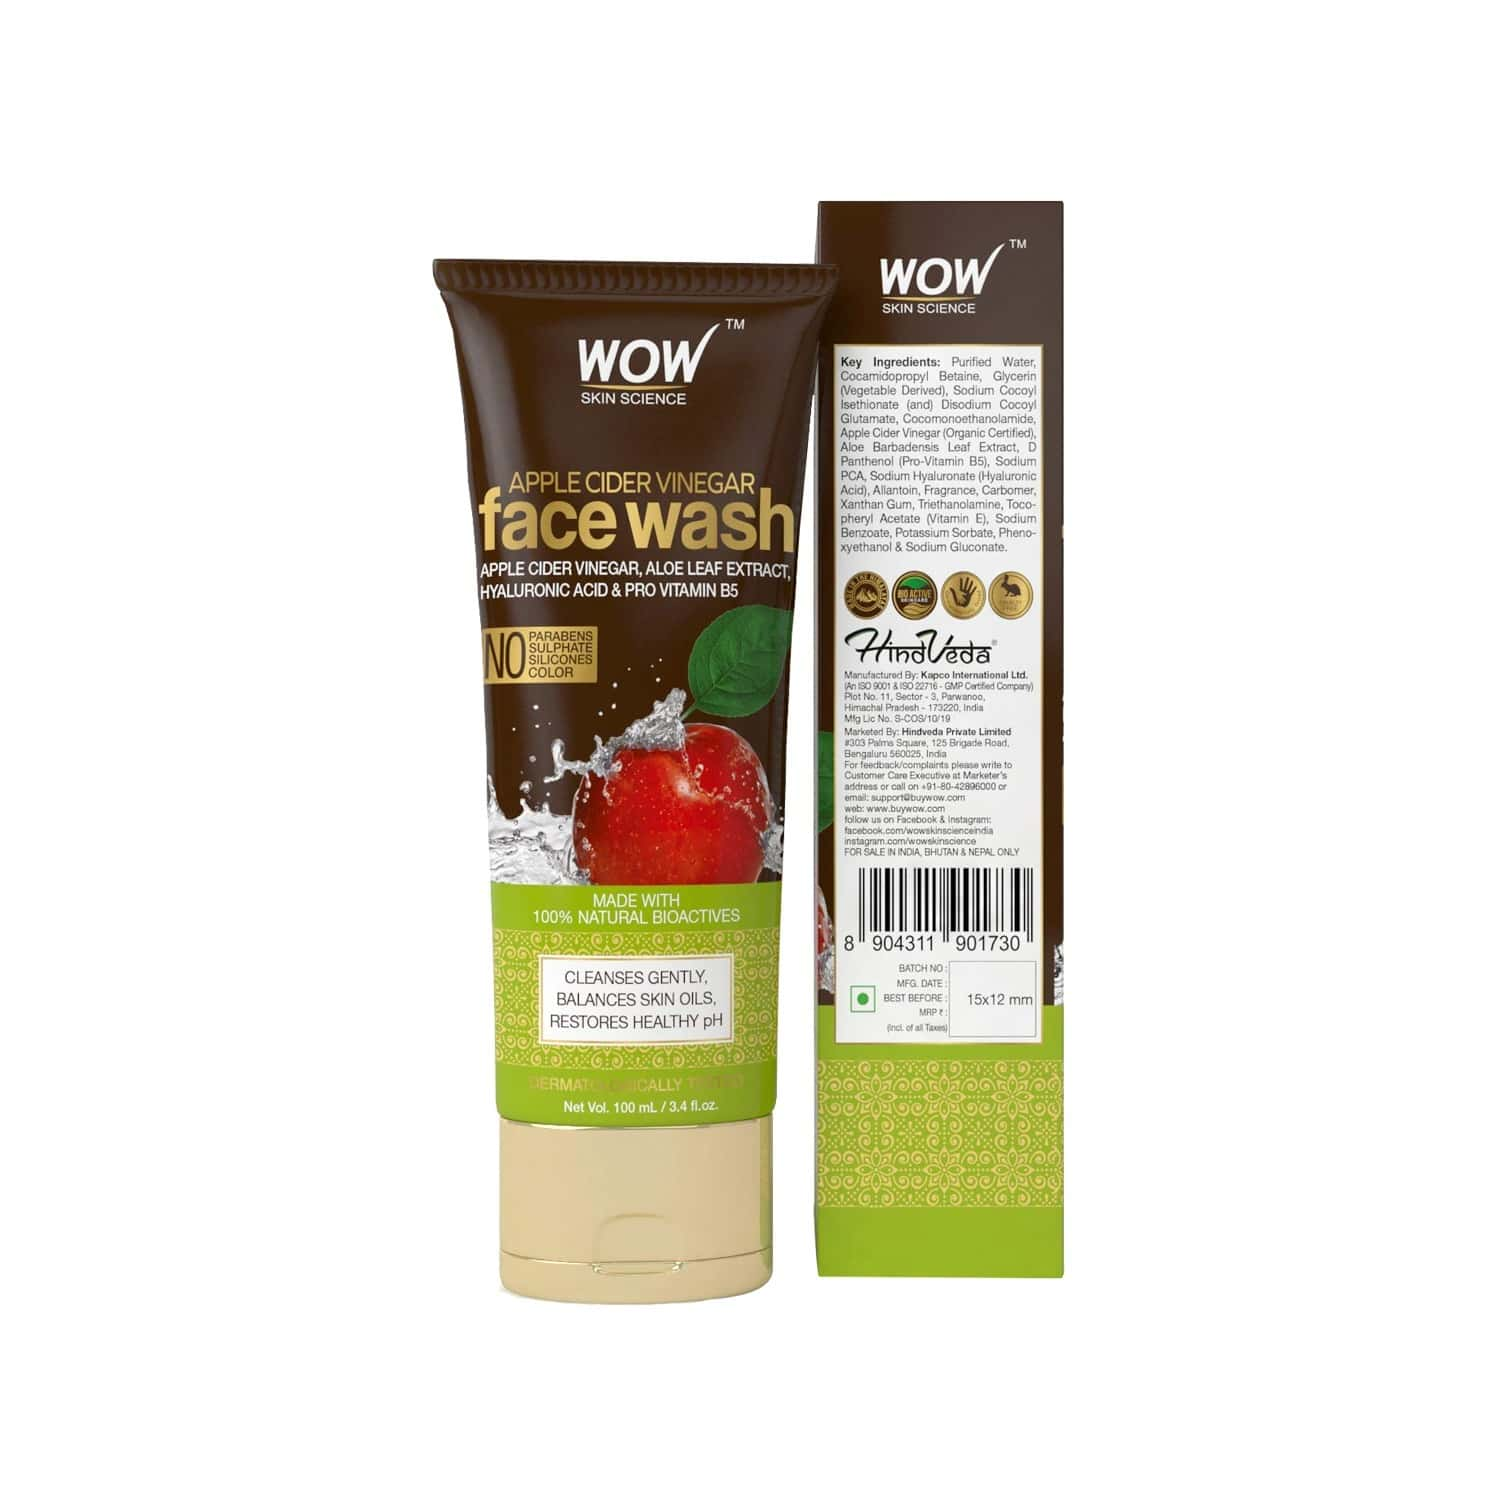 Wow Skin Science Apple Cider Vinegar Face Wash Tube - 100 Ml